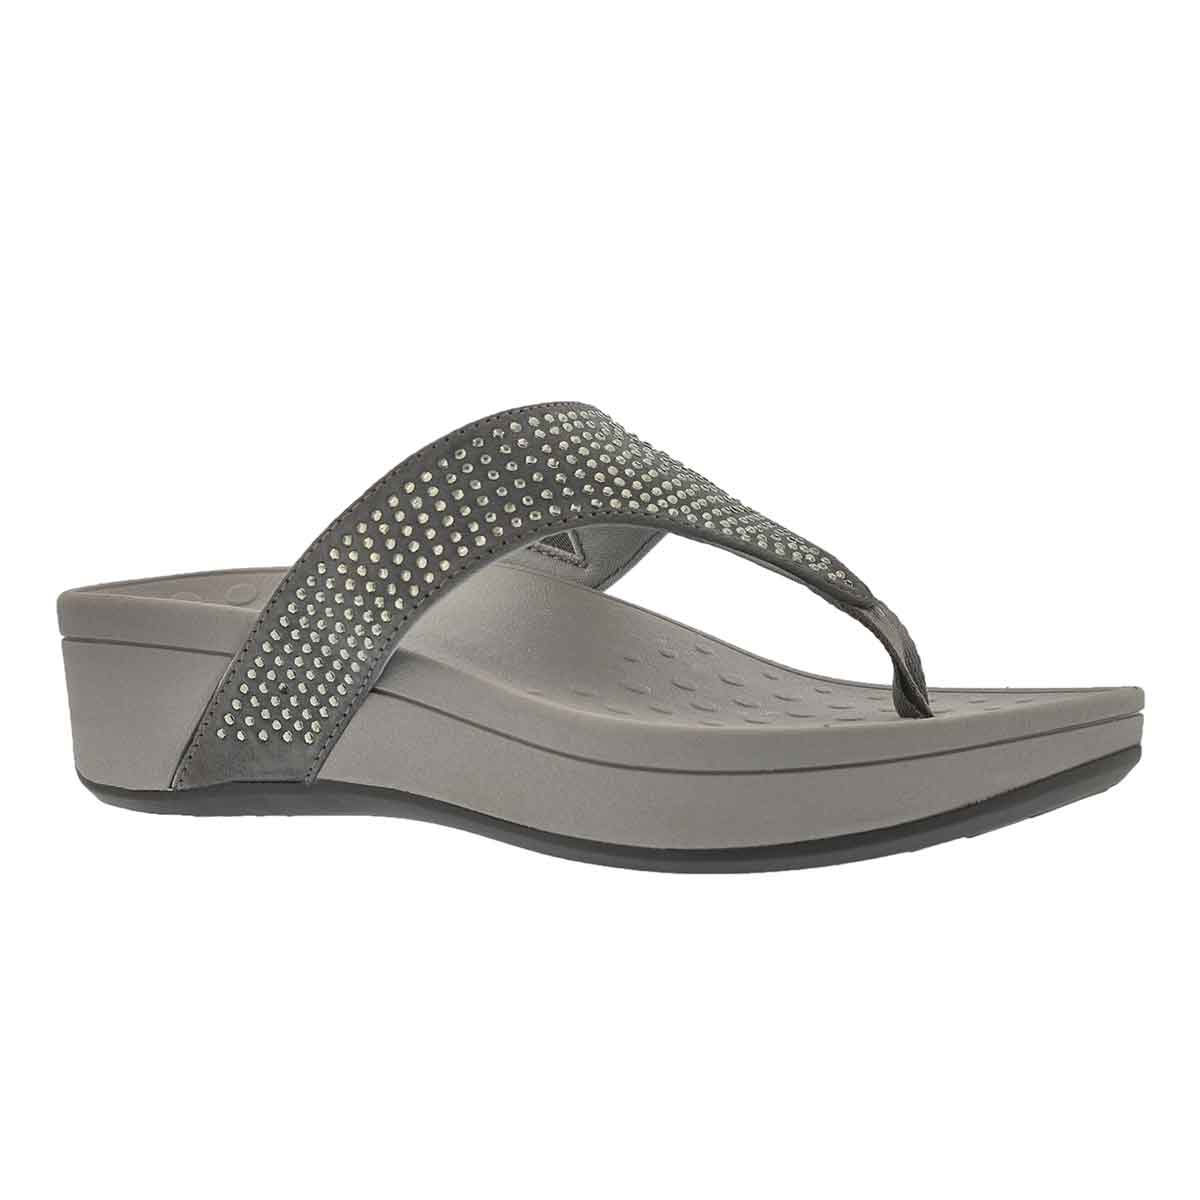 Women's NAPLES pewter arch support wdg sandals